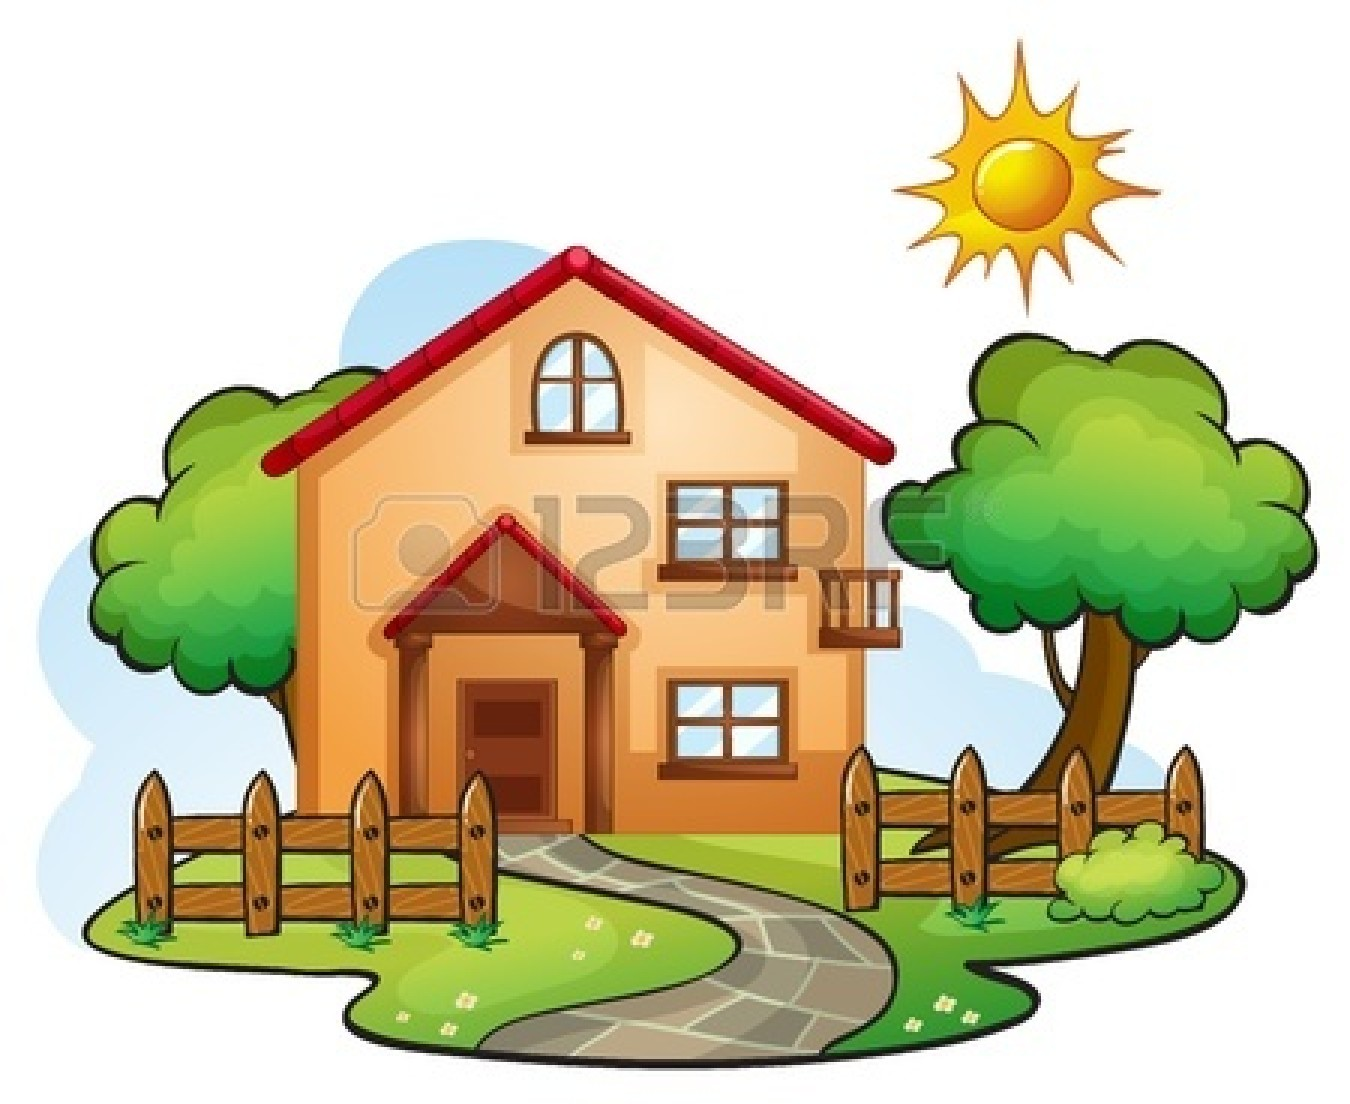 Illustration clipart beautiful house Images Cute cute%20house%20drawing Illustration House